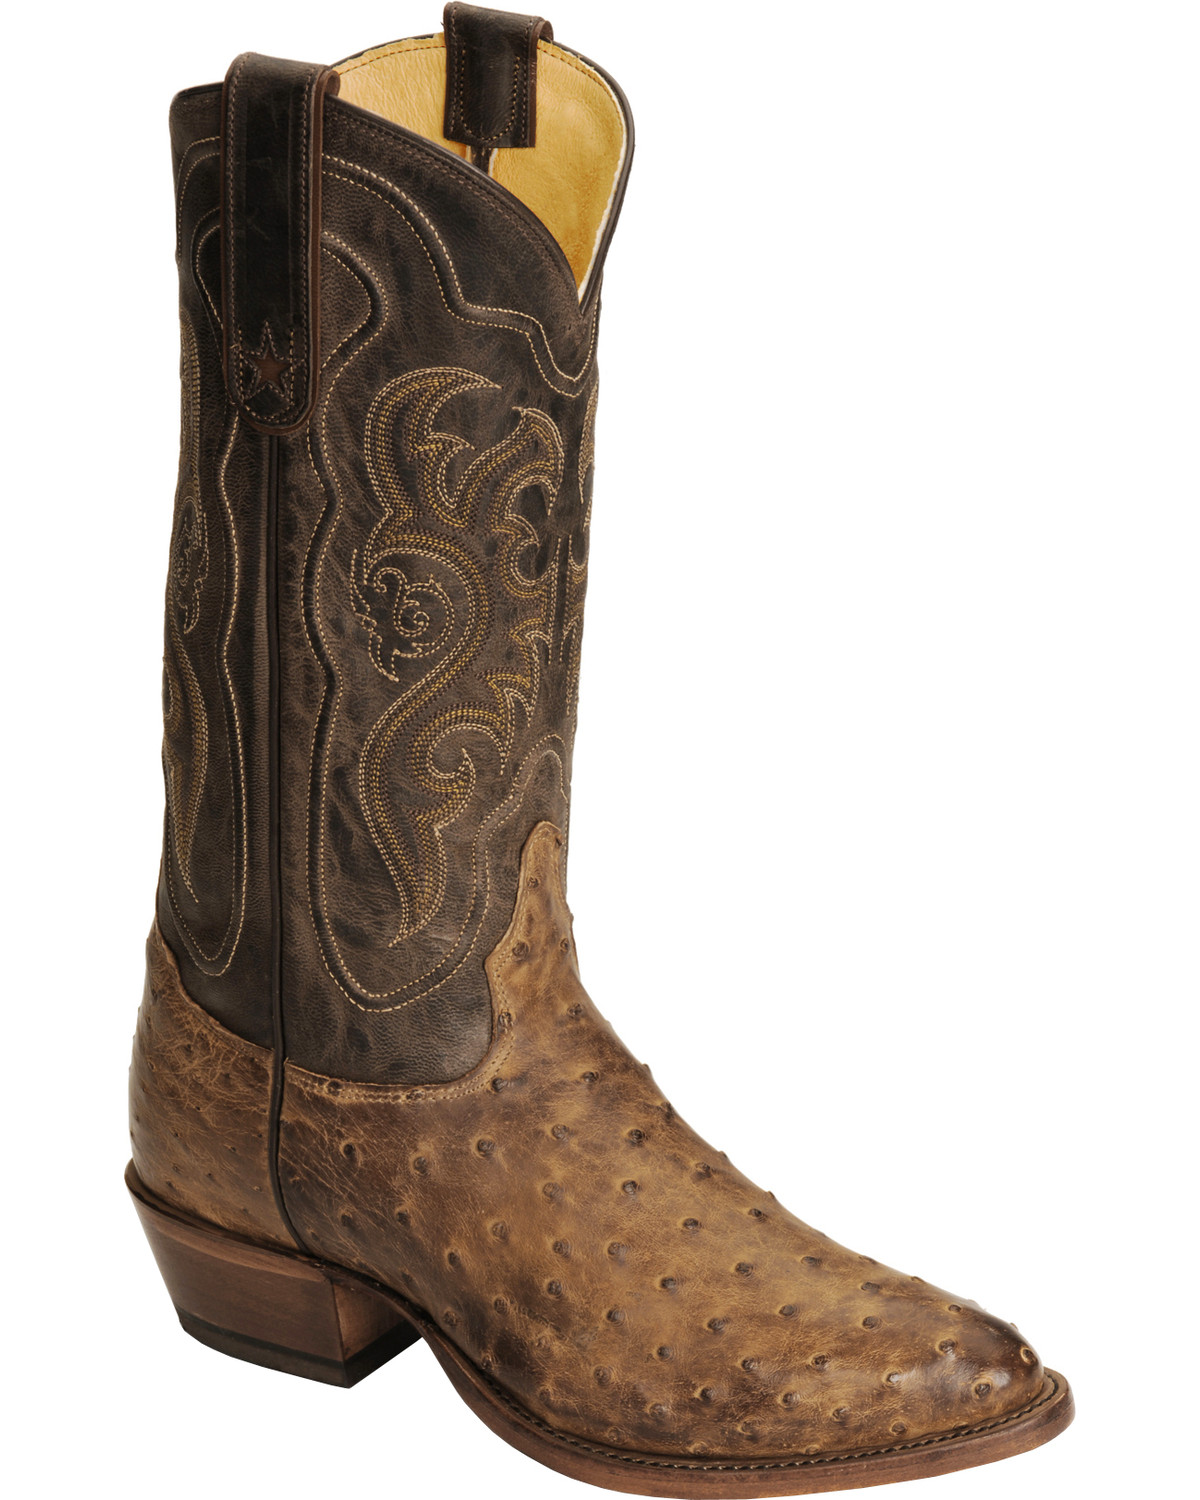 81e353712f0 Tony Lama Men's Vintage Full Quill Ostrich Exotic Western Boots